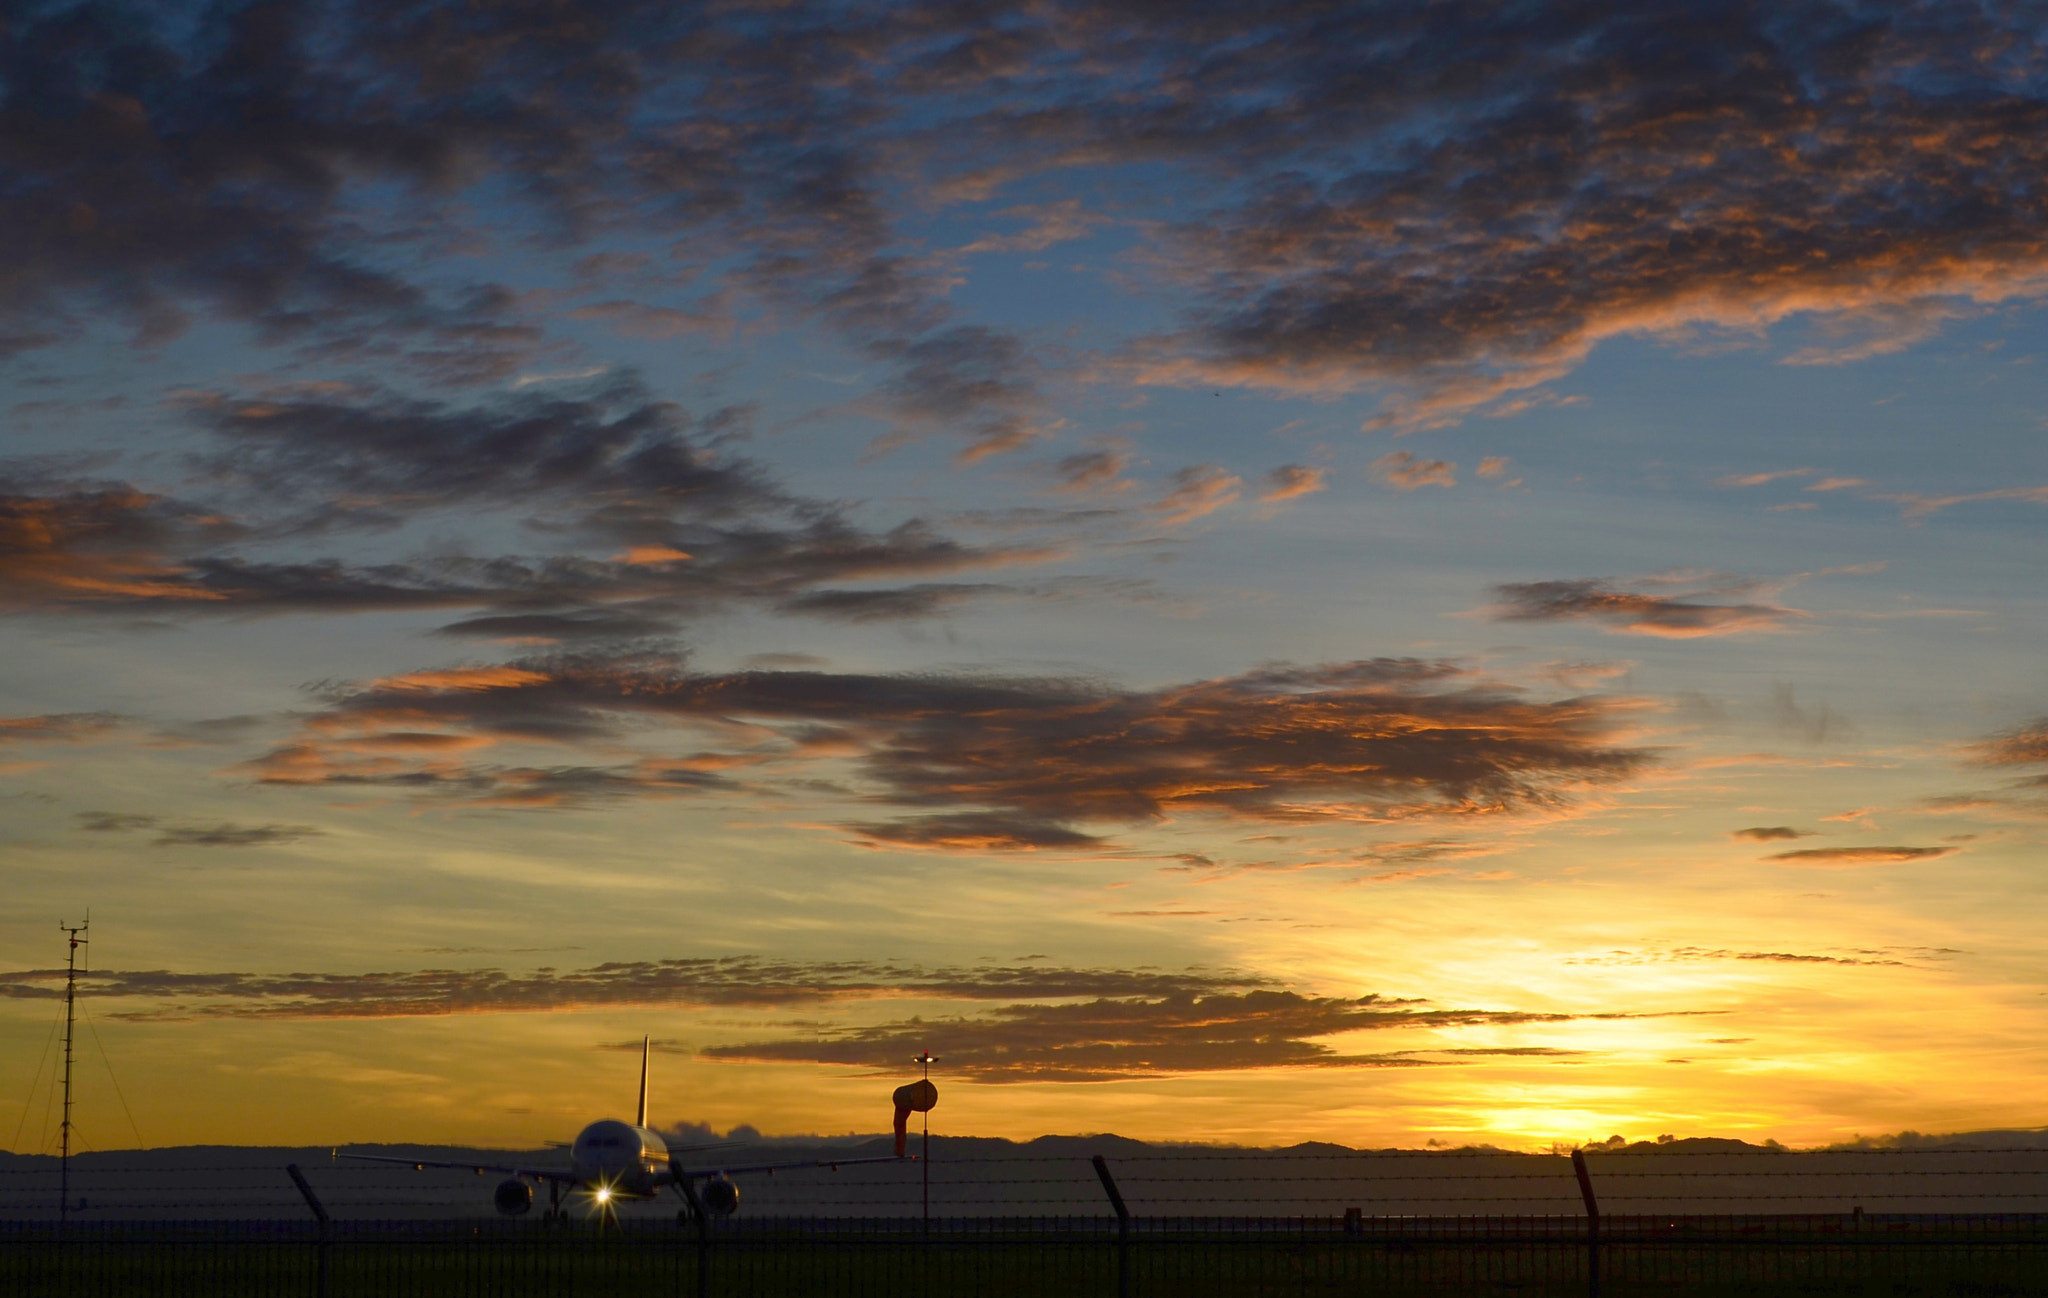 Photograph First flight at dawn by Vey Telmo on 500px